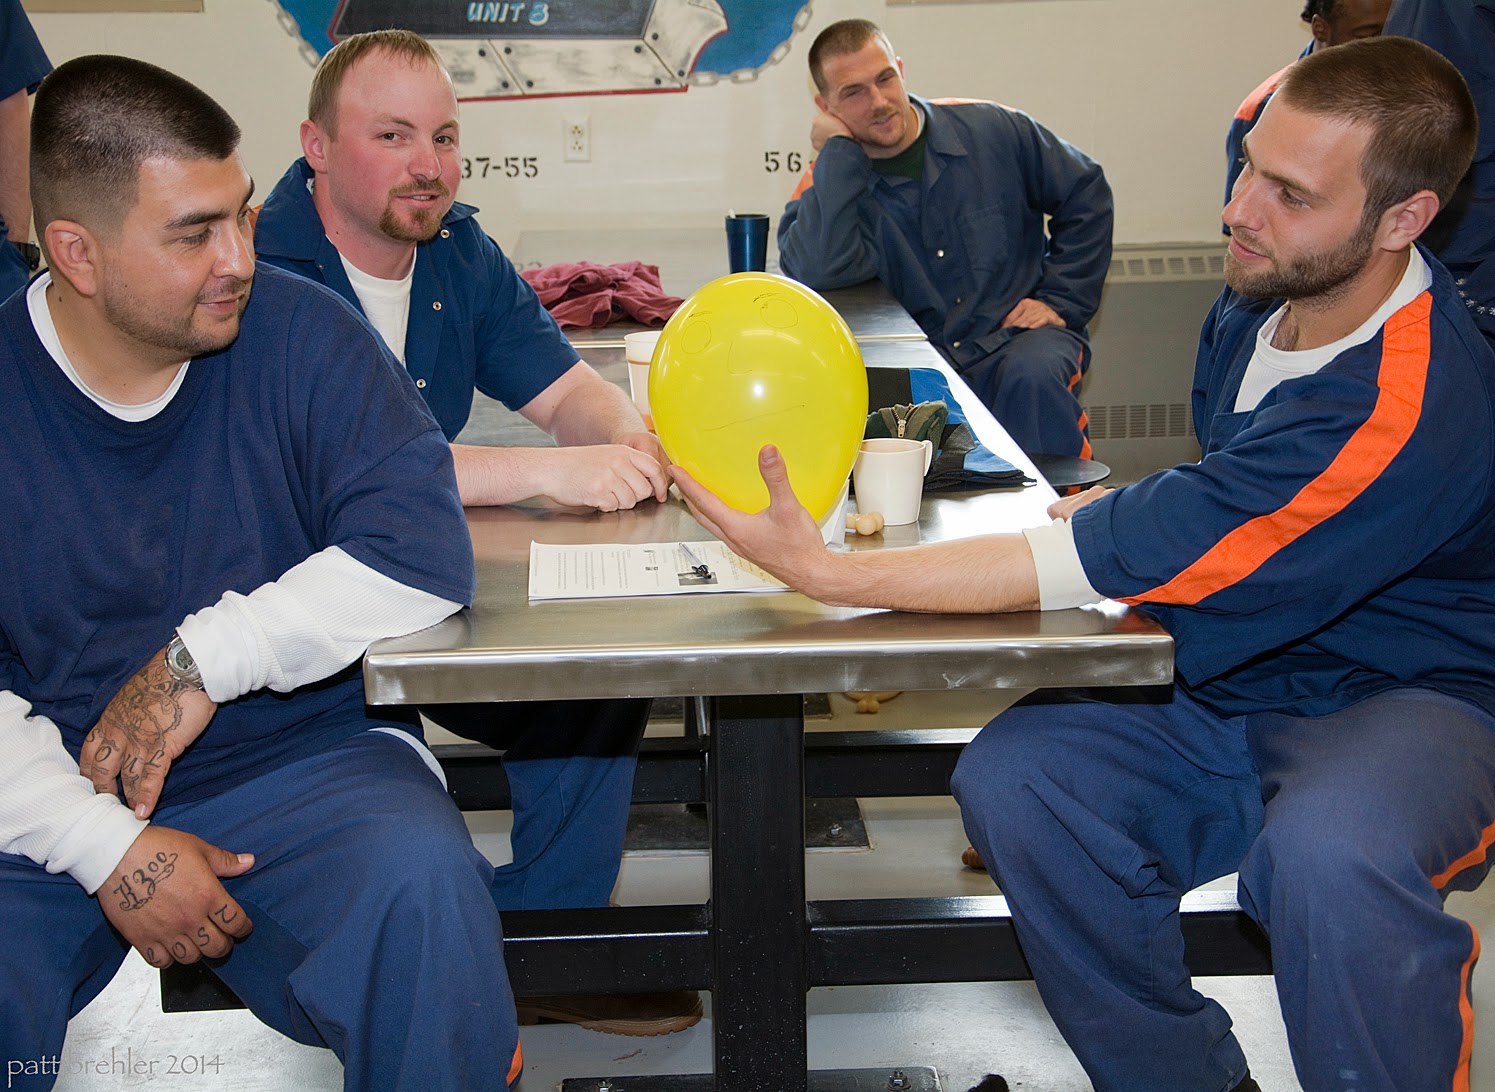 Four men dressed in the prison blue uniforms sit around a lunch table. The man on the right is holding a yellow balloon in his left hand on the table and looking at it. The man on the left has his left elbow on the table and is looking at the balloon. The two men in the background are looking at the camera and smiling.